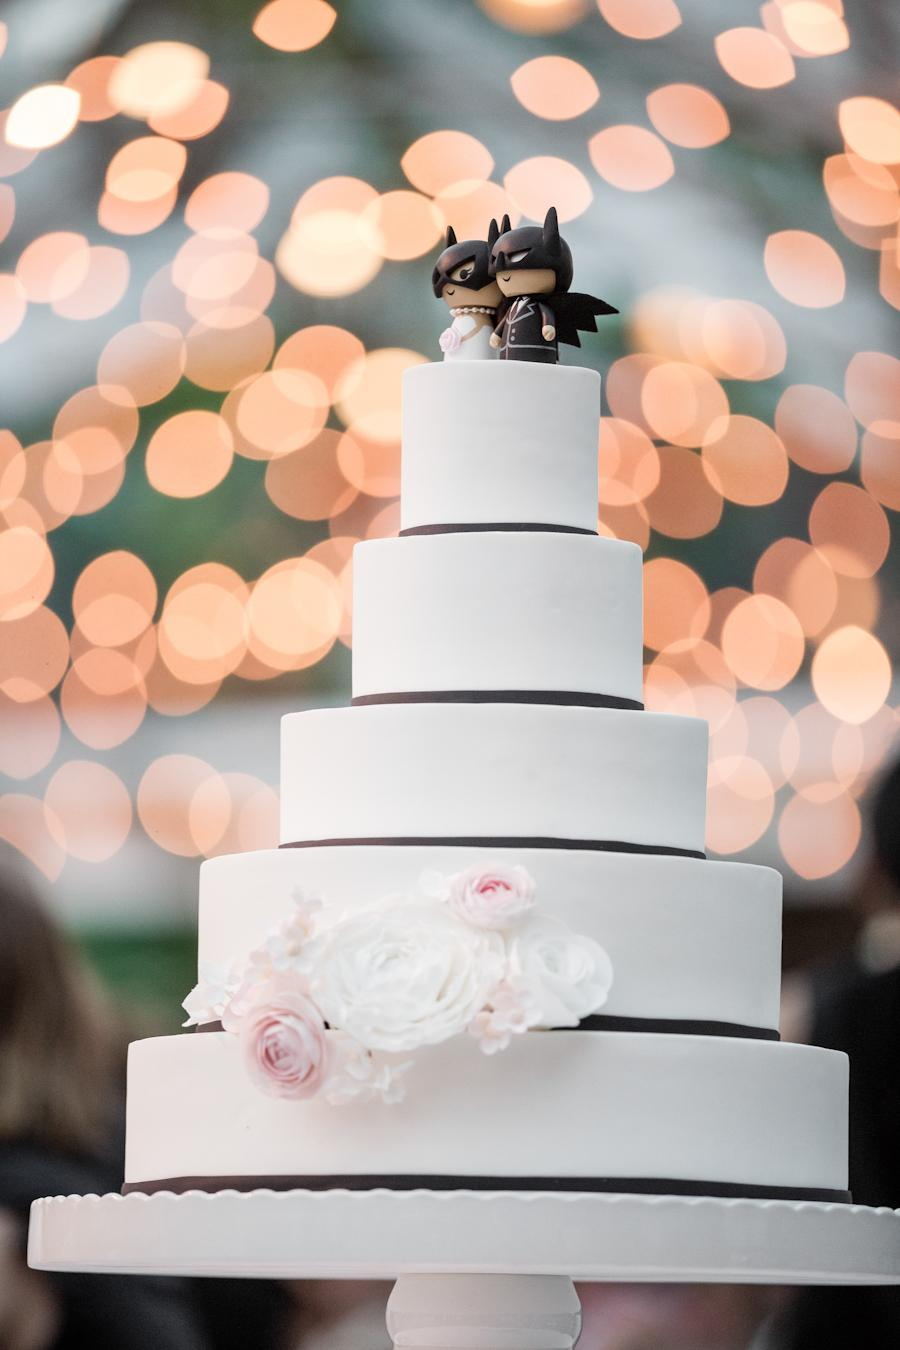 15 Funny Cake Toppers for the Lighthearted Couple | Diy wedding cake topper,  Wedding cake topper diy, Funny wedding cake toppers Funny cute wedding cake toppers - pro wedding invites